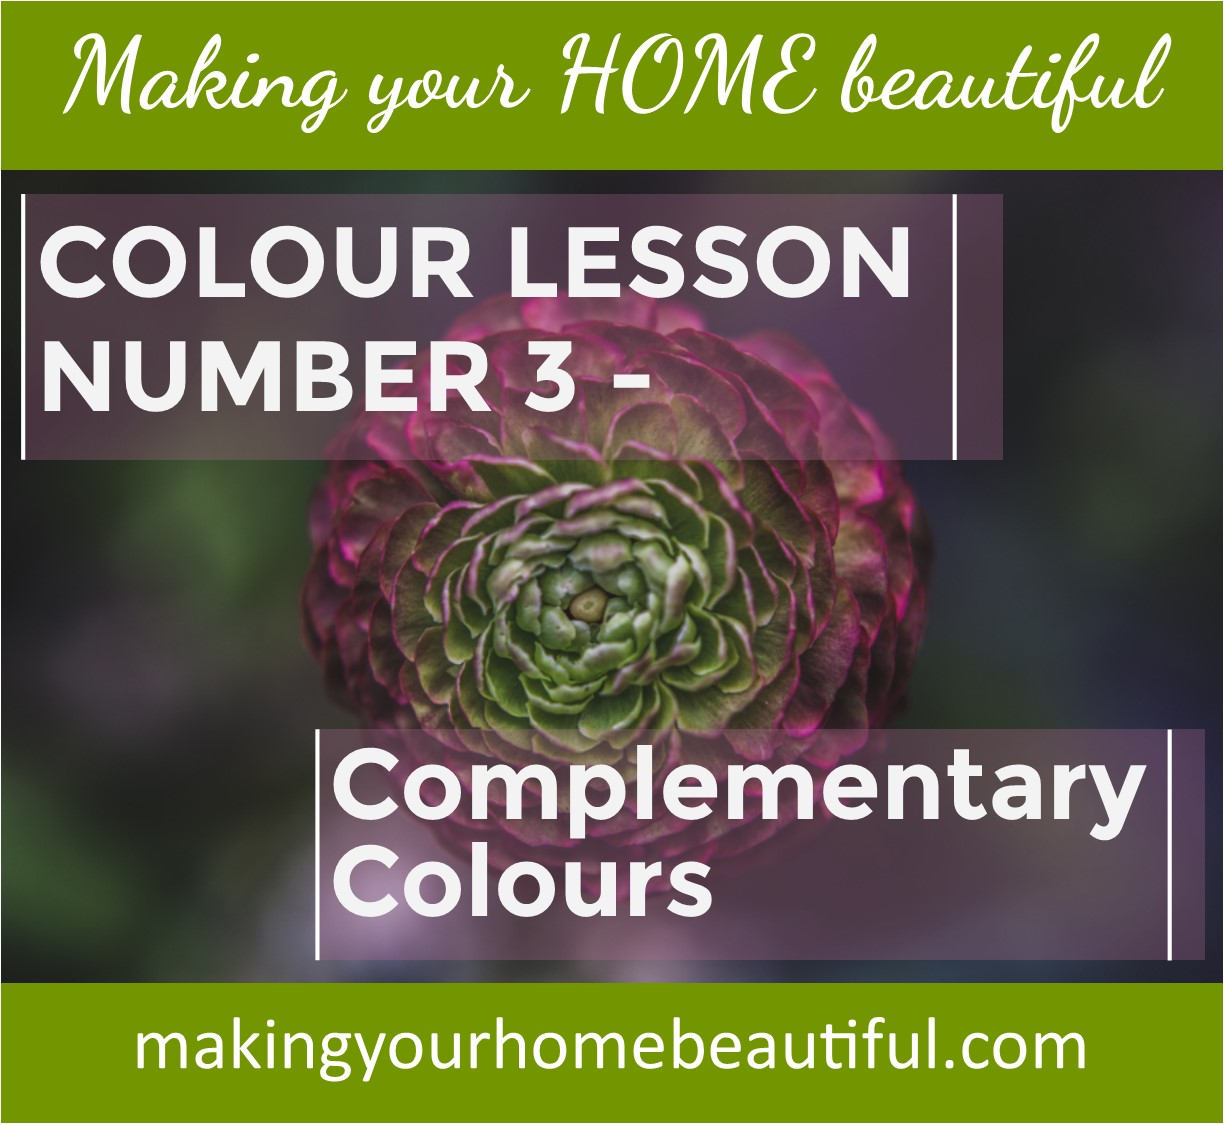 Complementary Colour Schemes - colour lesson 3